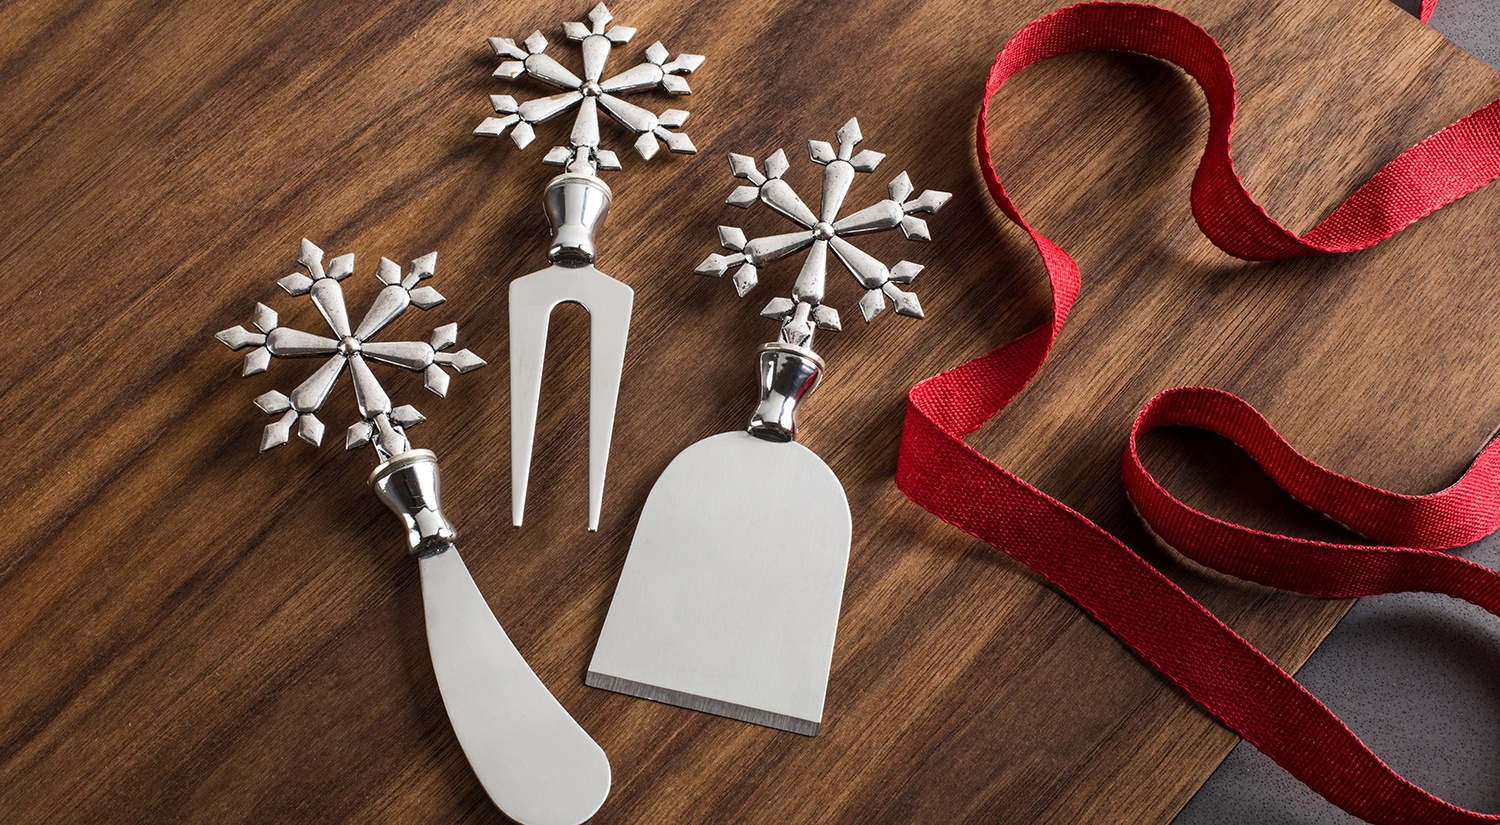 Christmas cheese knives